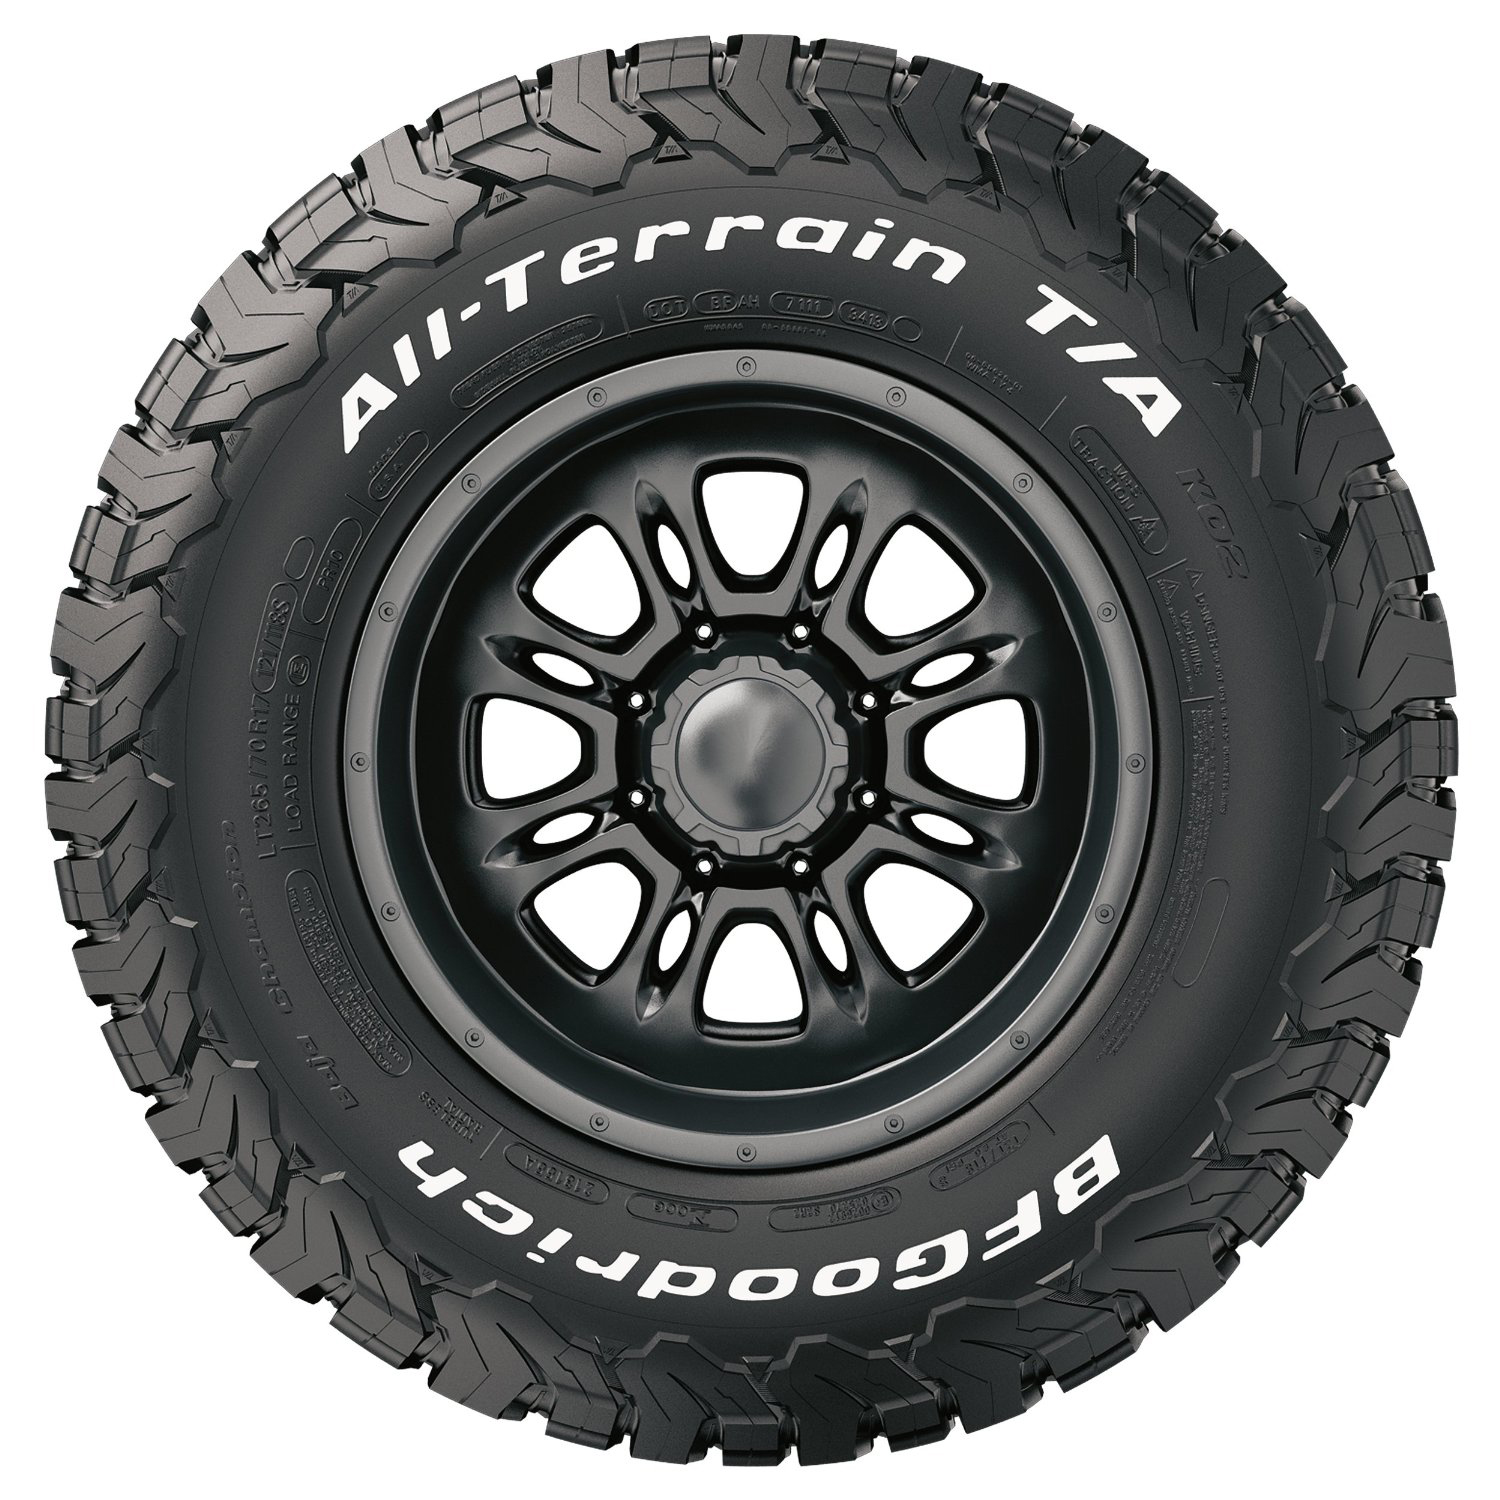 BF Goodrich All-Terrain T A KO2 Tire LT275 70R18 10 125 122R by BFGoodrich